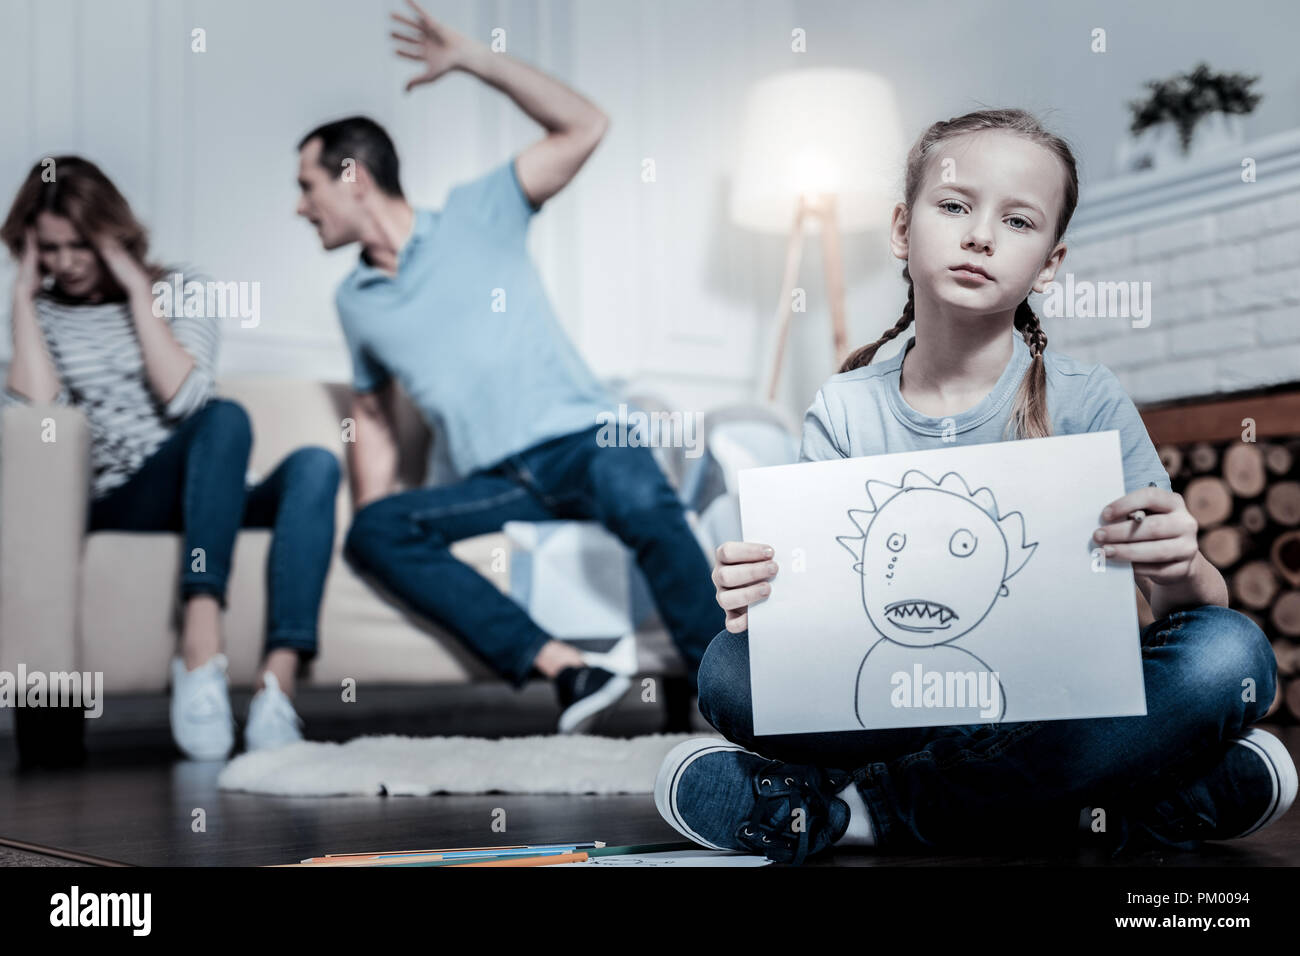 Indifferent kid showing a picture - Stock Image